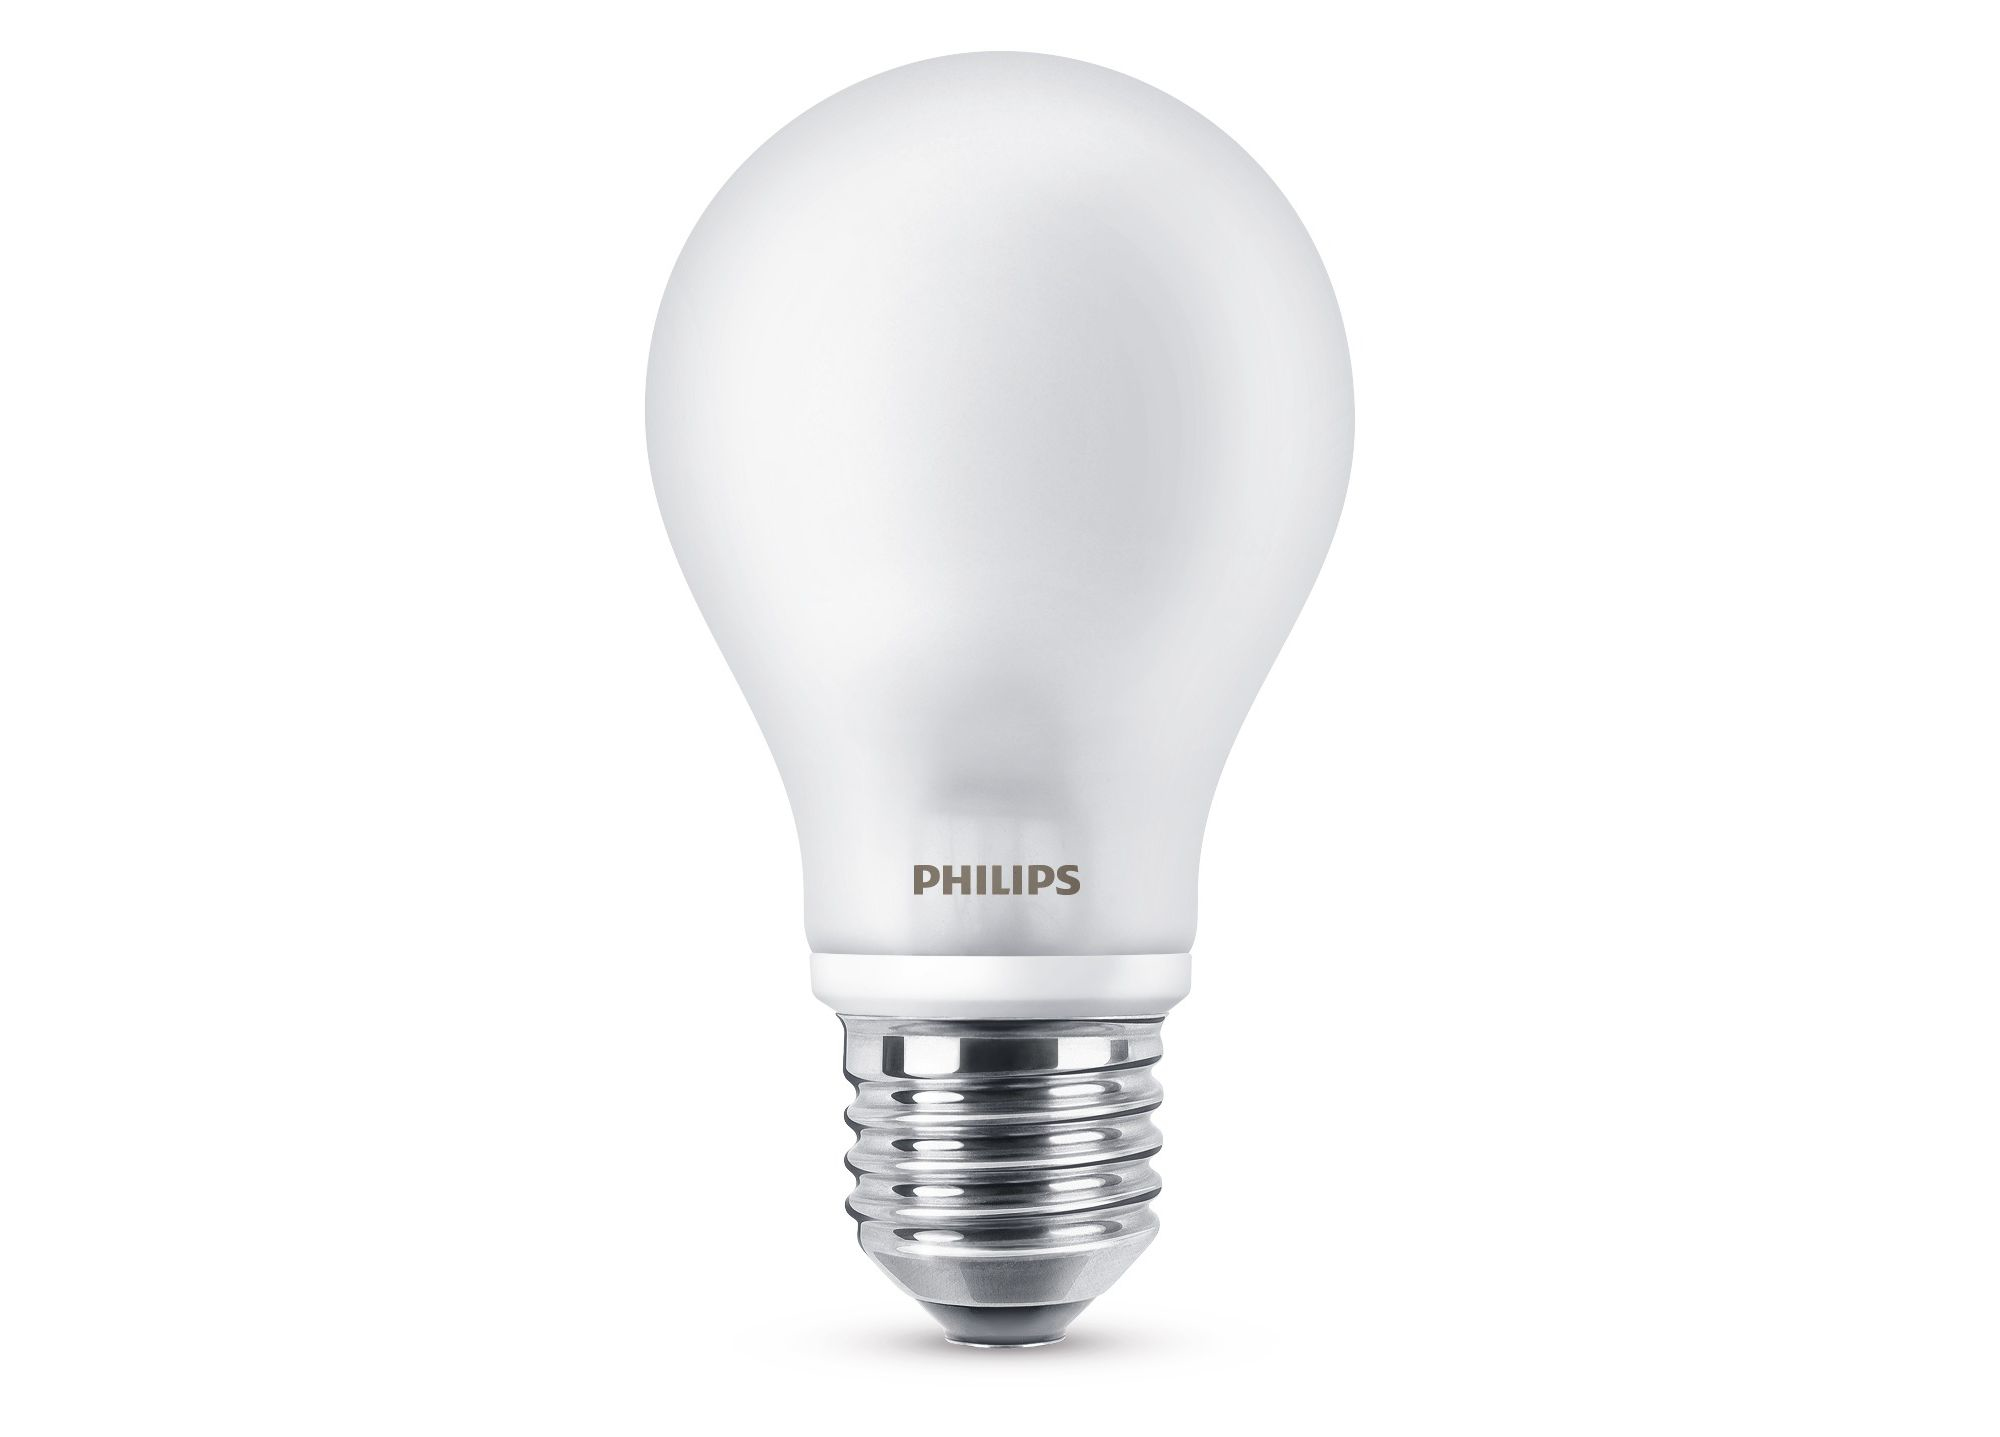 Philips - Lampadina a LED - Incaled75840